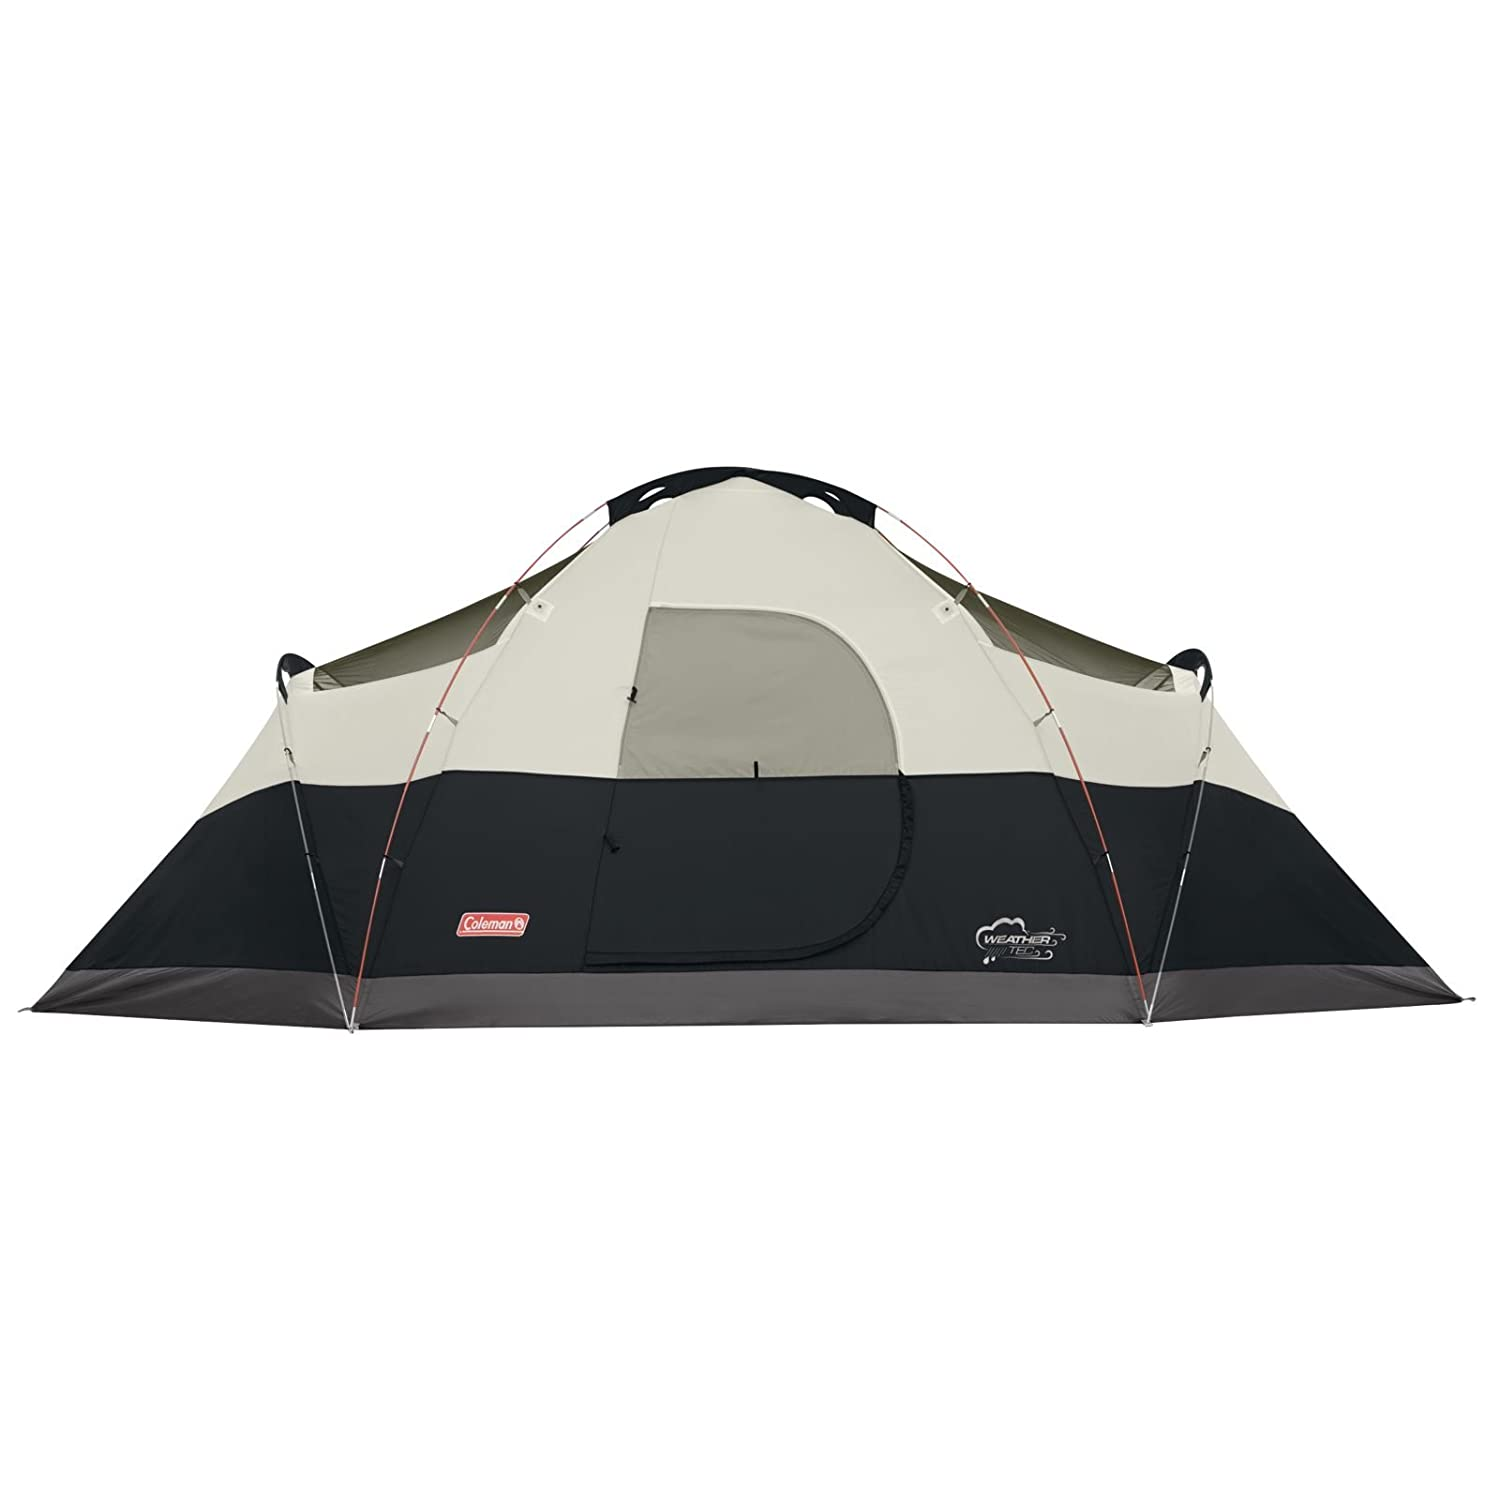 Coleman 8 Person Red Canyon Tent Full Review